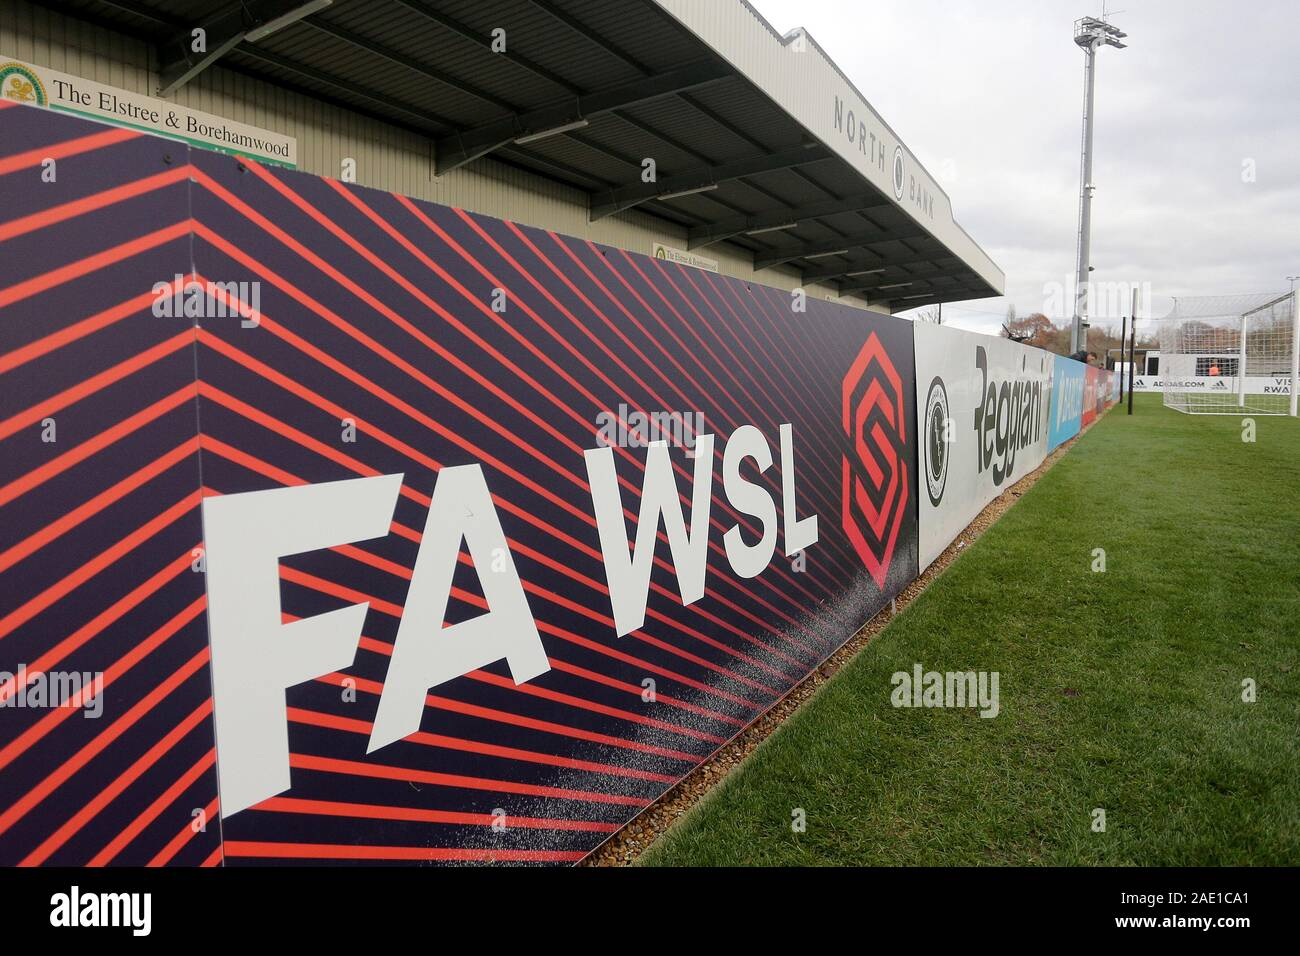 General view of the FAWSL signage during Arsenal Women vs Bristol City Women, Barclays FA Women's Super League Football at Meadow Park on 1st December Stock Photo